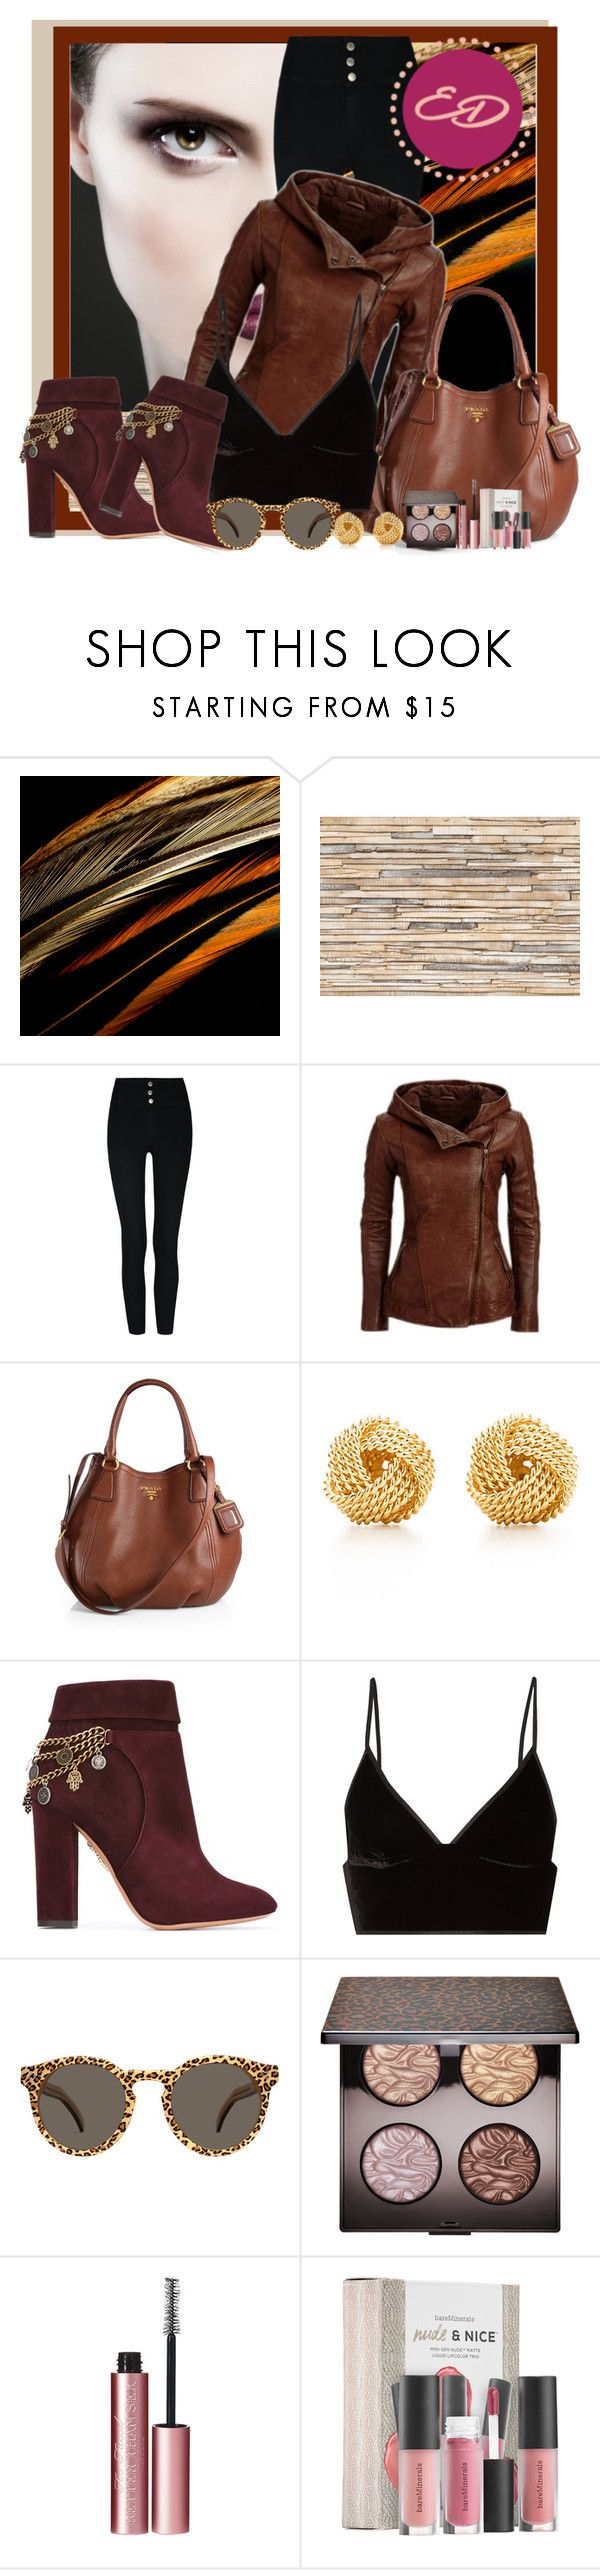 Esther Desir entree by mango27 on Polyvore featuring T By Alexander Wang, Aquazzura, Prada, Tiffany & Co., Illesteva, Laura Mercier, Sephora Collection and Brewster Home Fashions